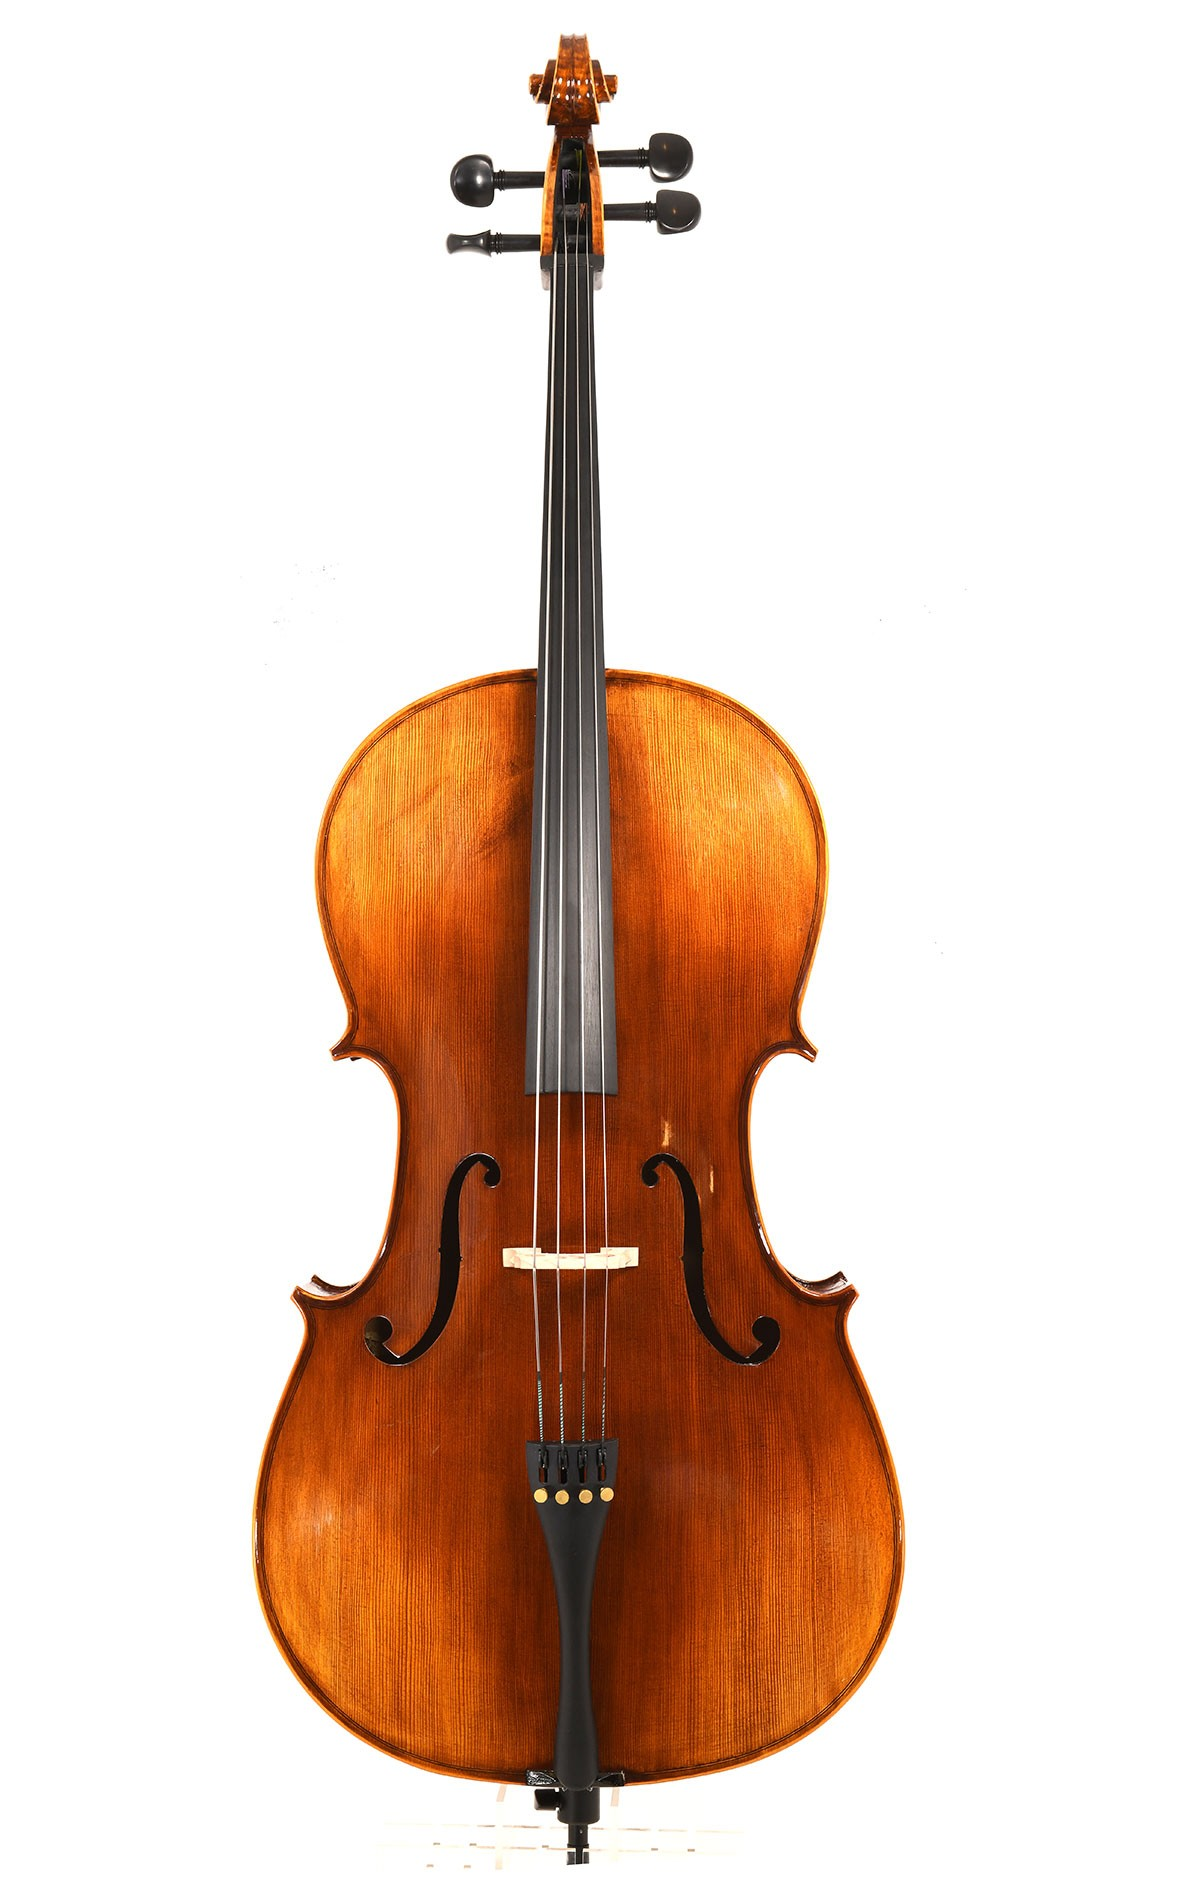 SALE Cello Opus 18 no. 6 from the CV Selectio portfolio